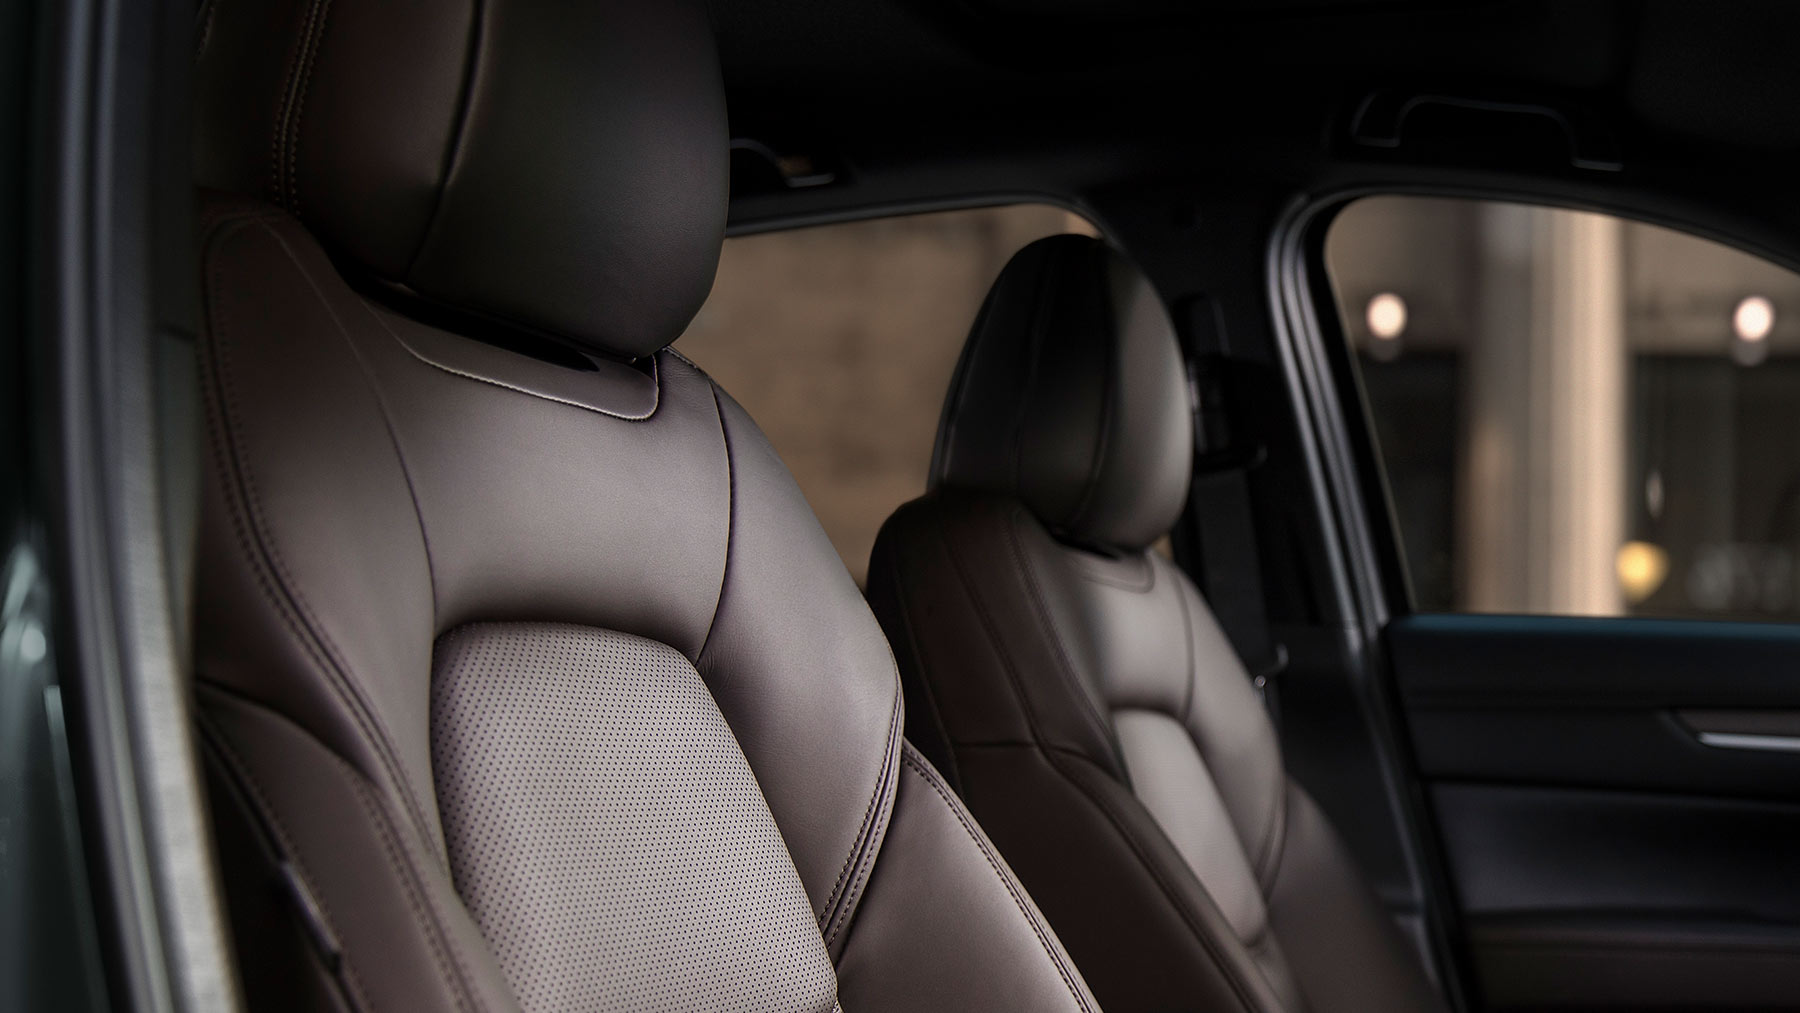 Luxurious Seating in the Mazda CX-5